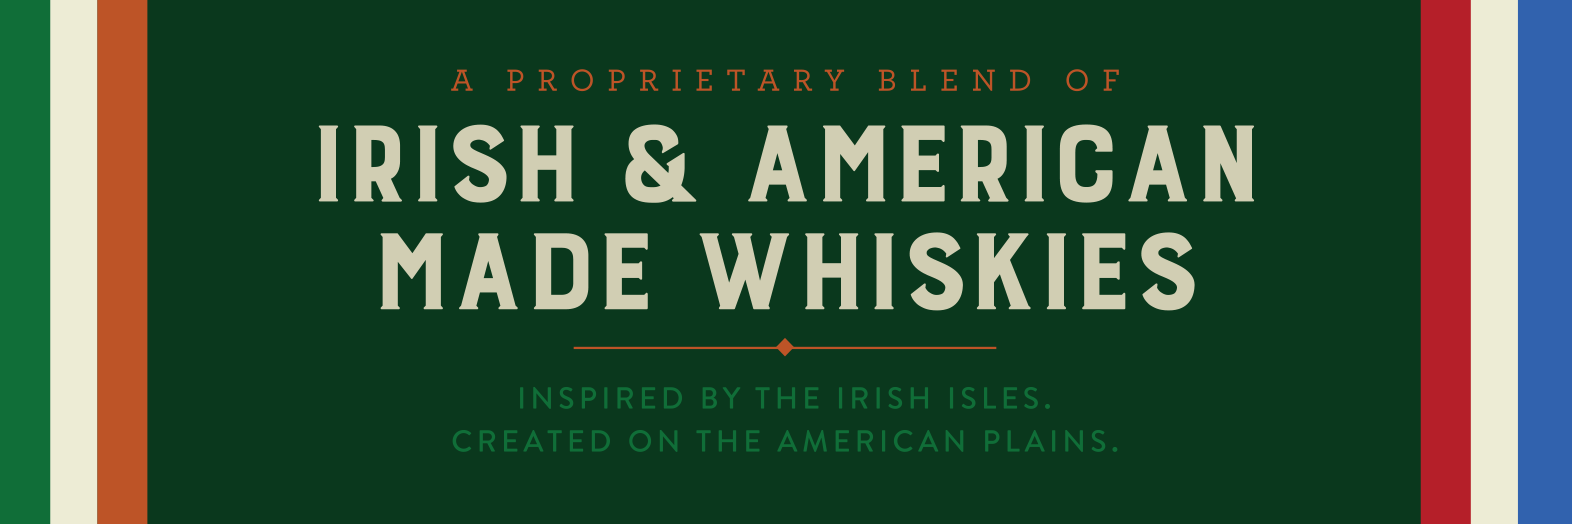 A Proprietary Blend of Irish & American Made Whiskies